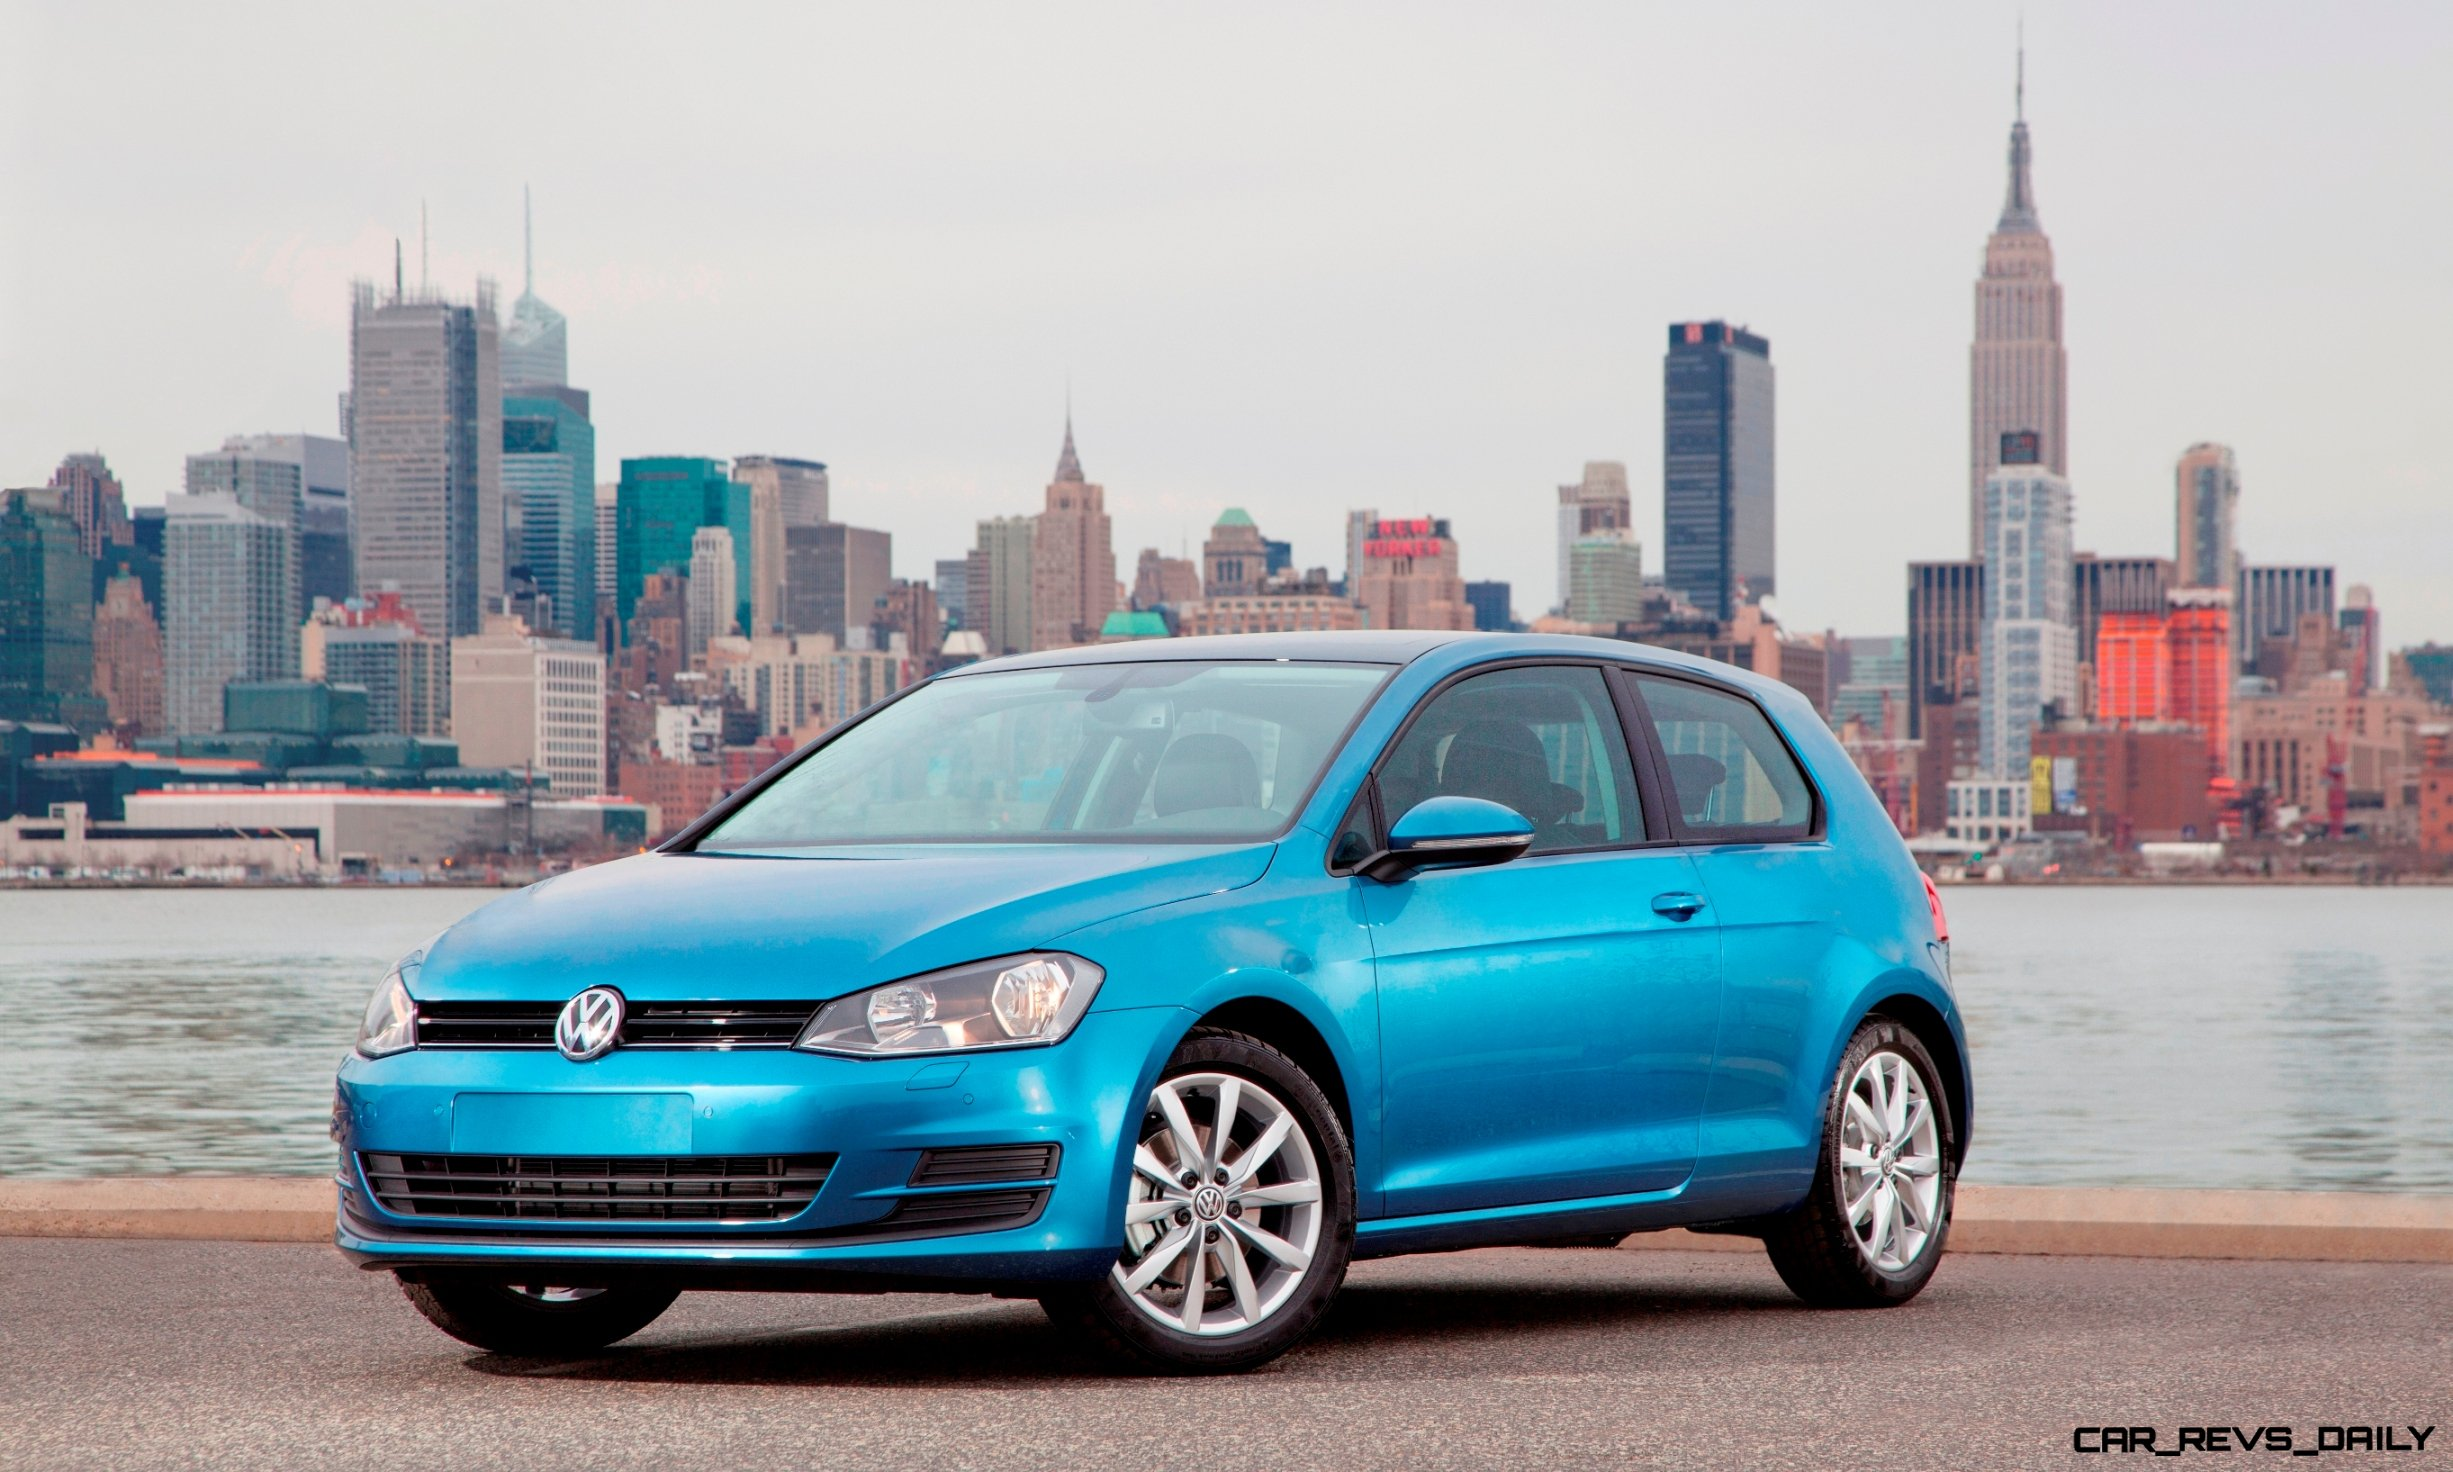 2015 vw golf tsi 3dr joins tdi and gti in brooklyn en route to detroit show 20 car revs. Black Bedroom Furniture Sets. Home Design Ideas